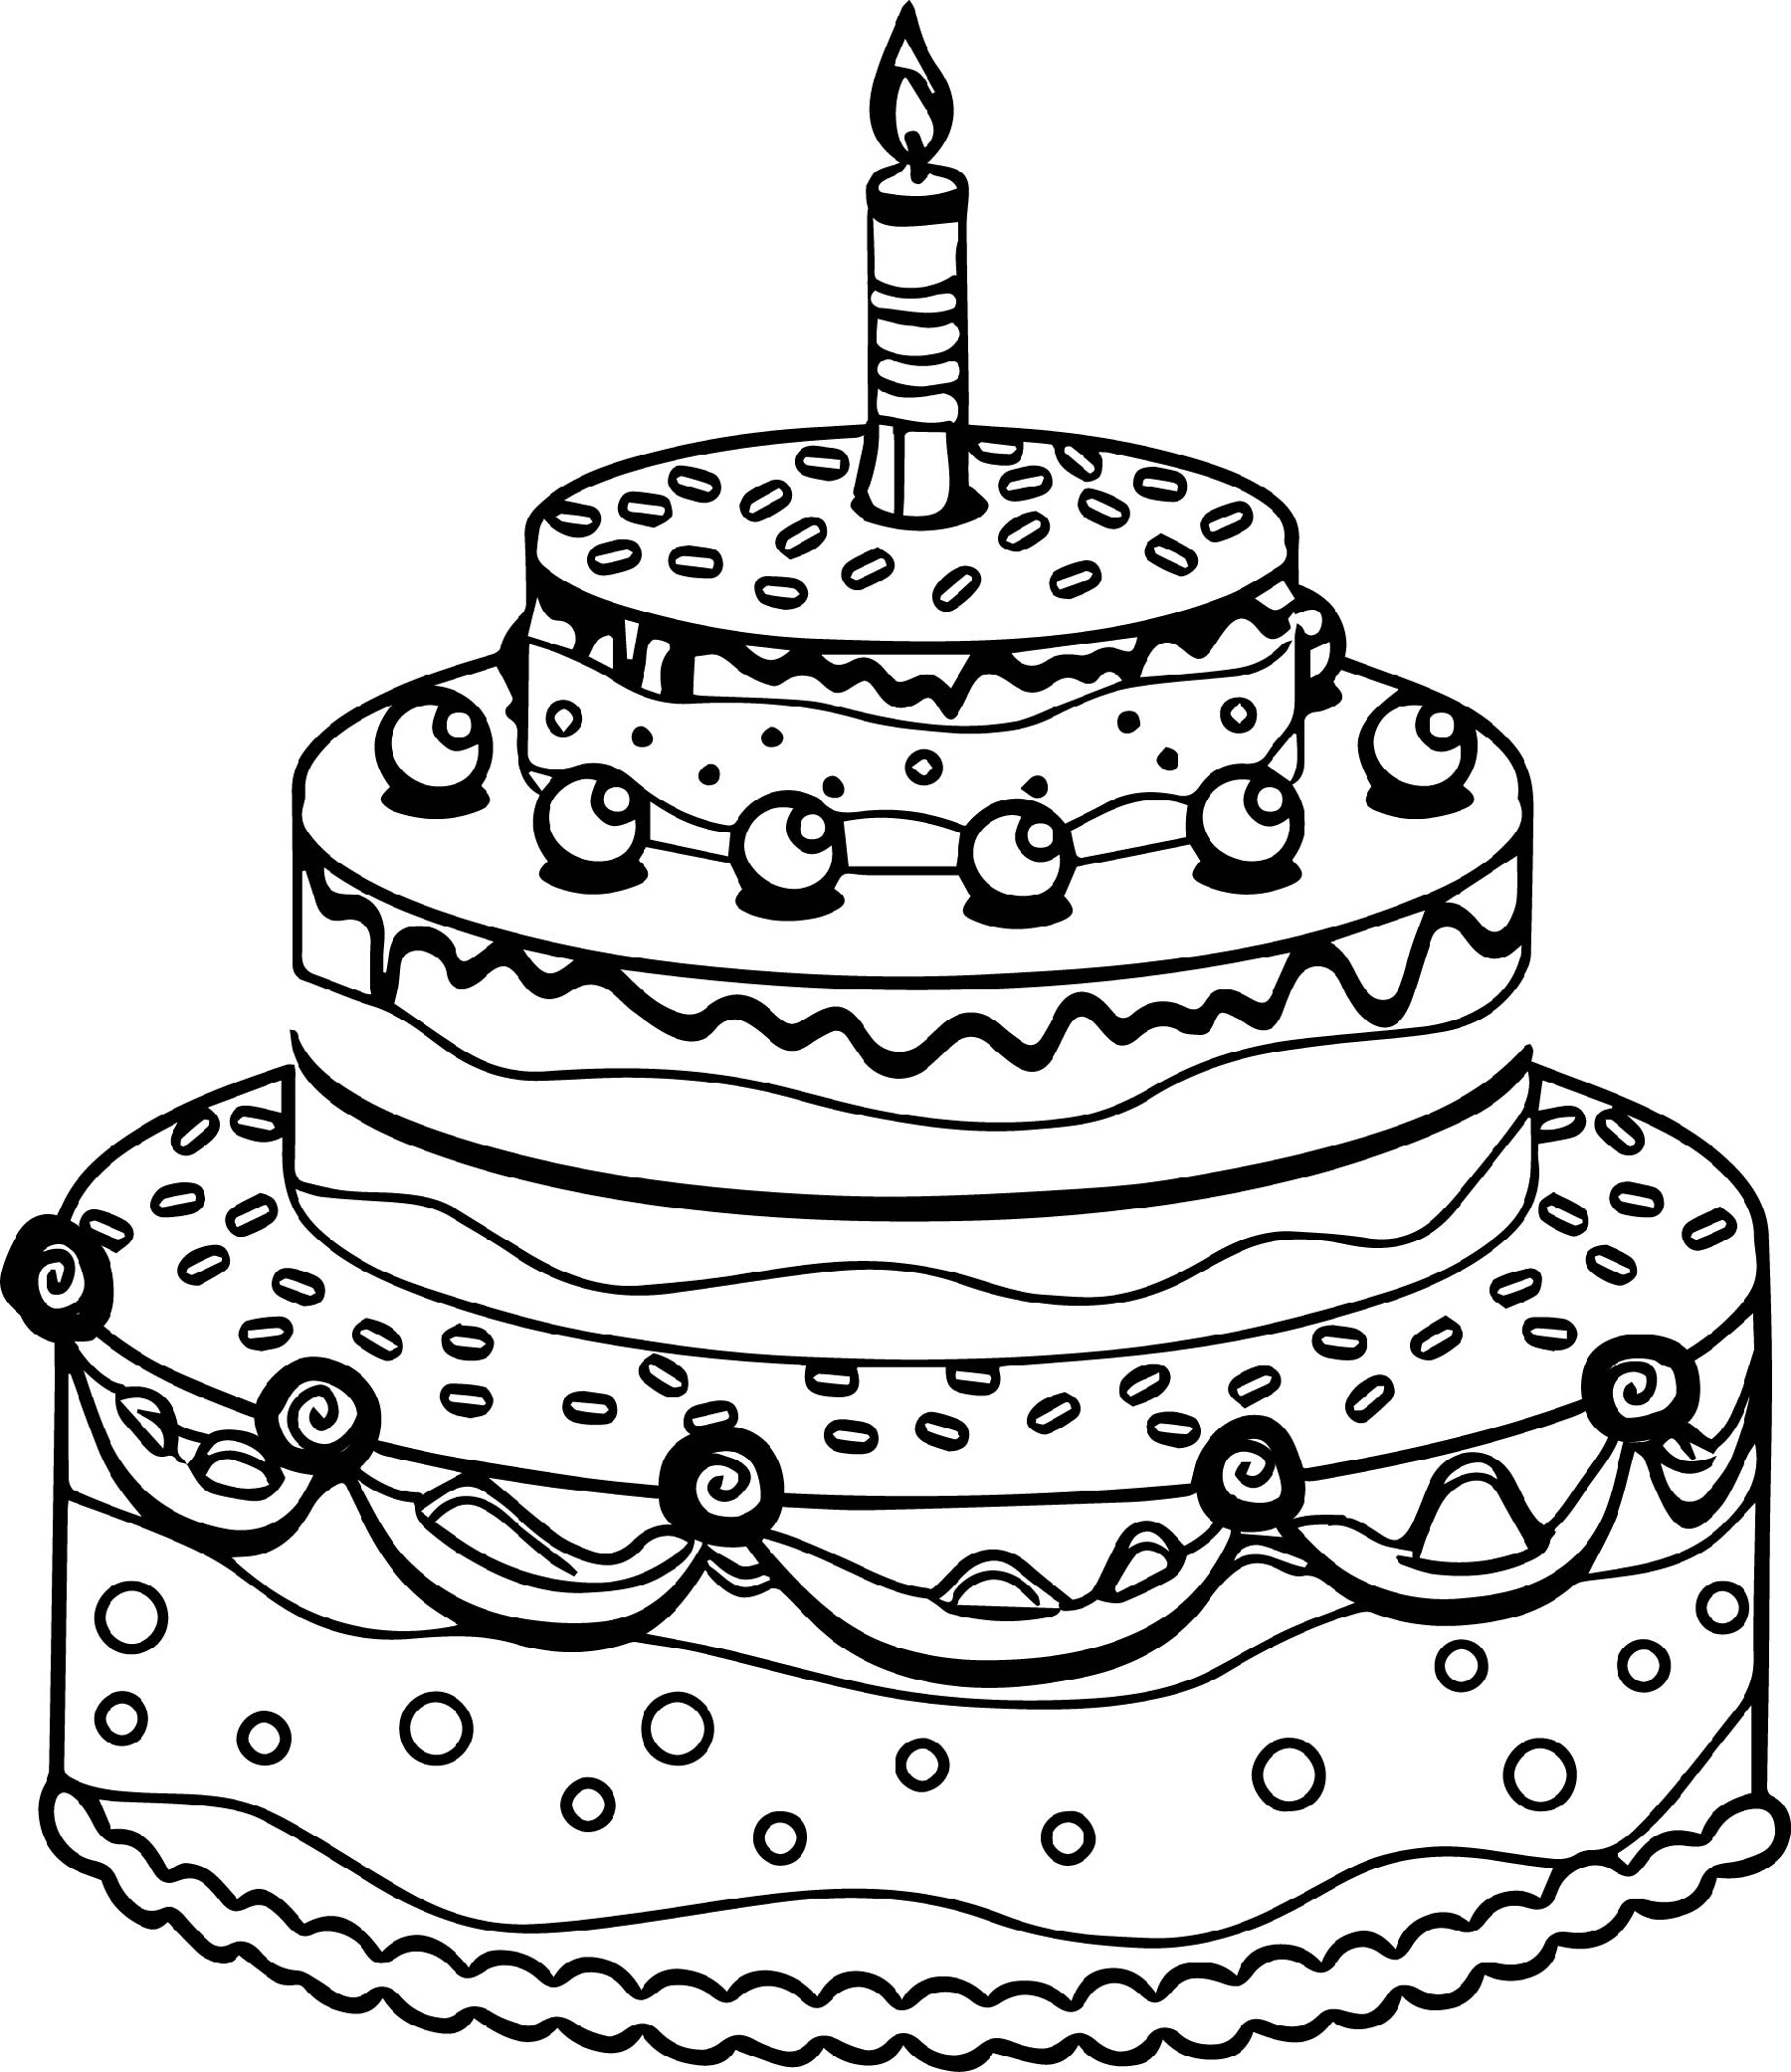 Cake Coloring Pages Cute